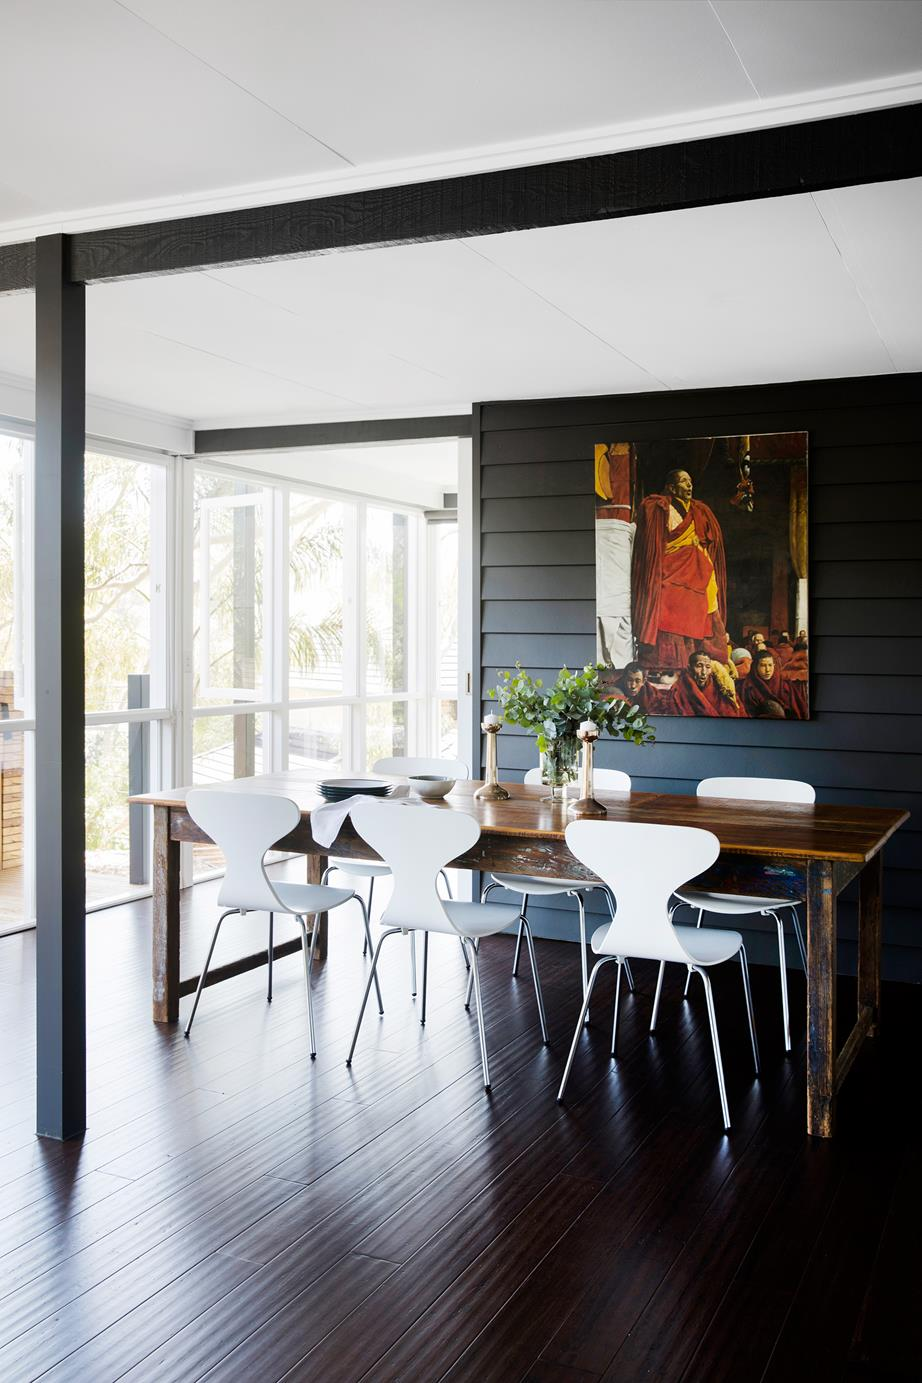 MacMasters Beach House by Angus Crowe